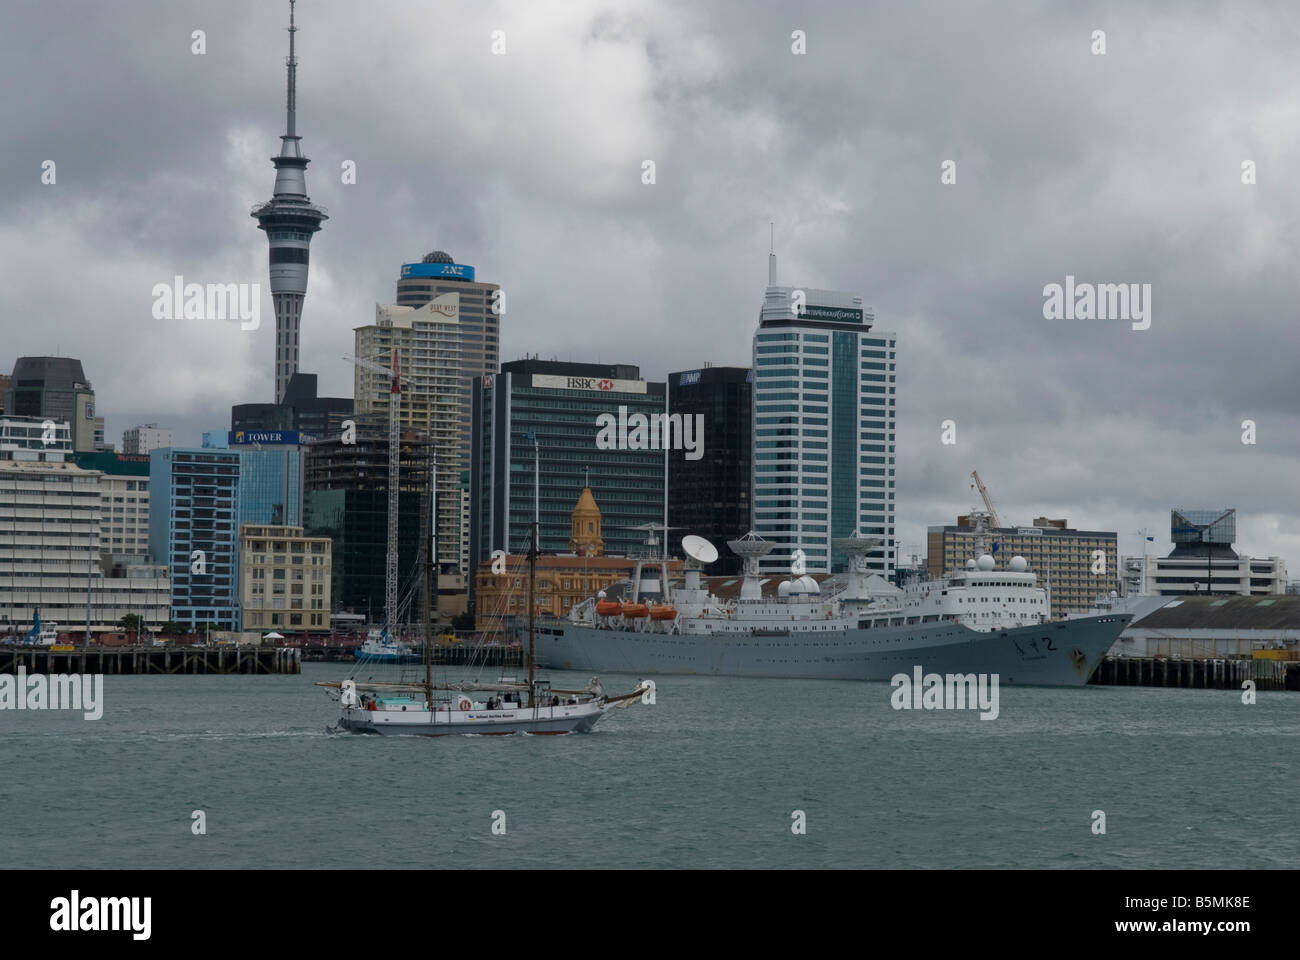 Small boat entering Auckland harbour with the city skyline in the background. - Stock Image